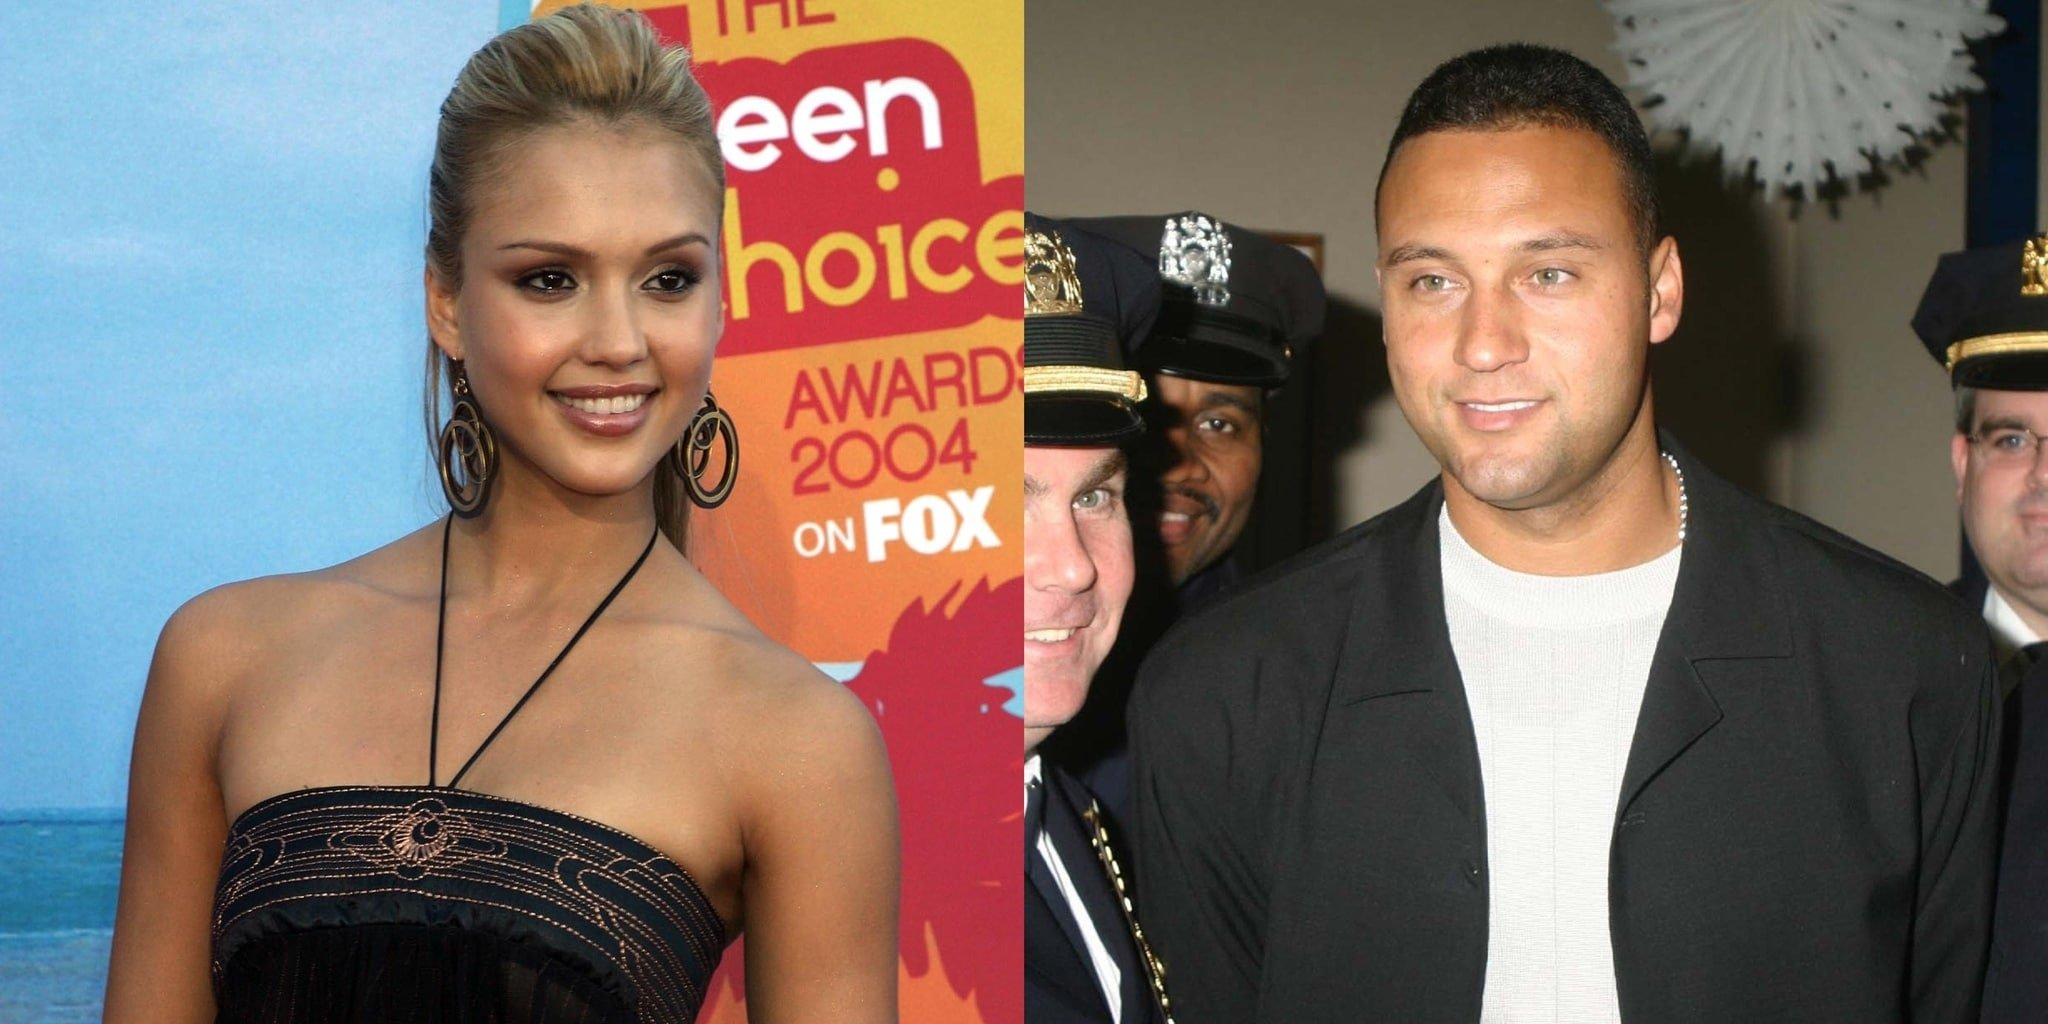 Derek Jeter is rumored to have given Jessica Alba herpes while dating briefly in 2004